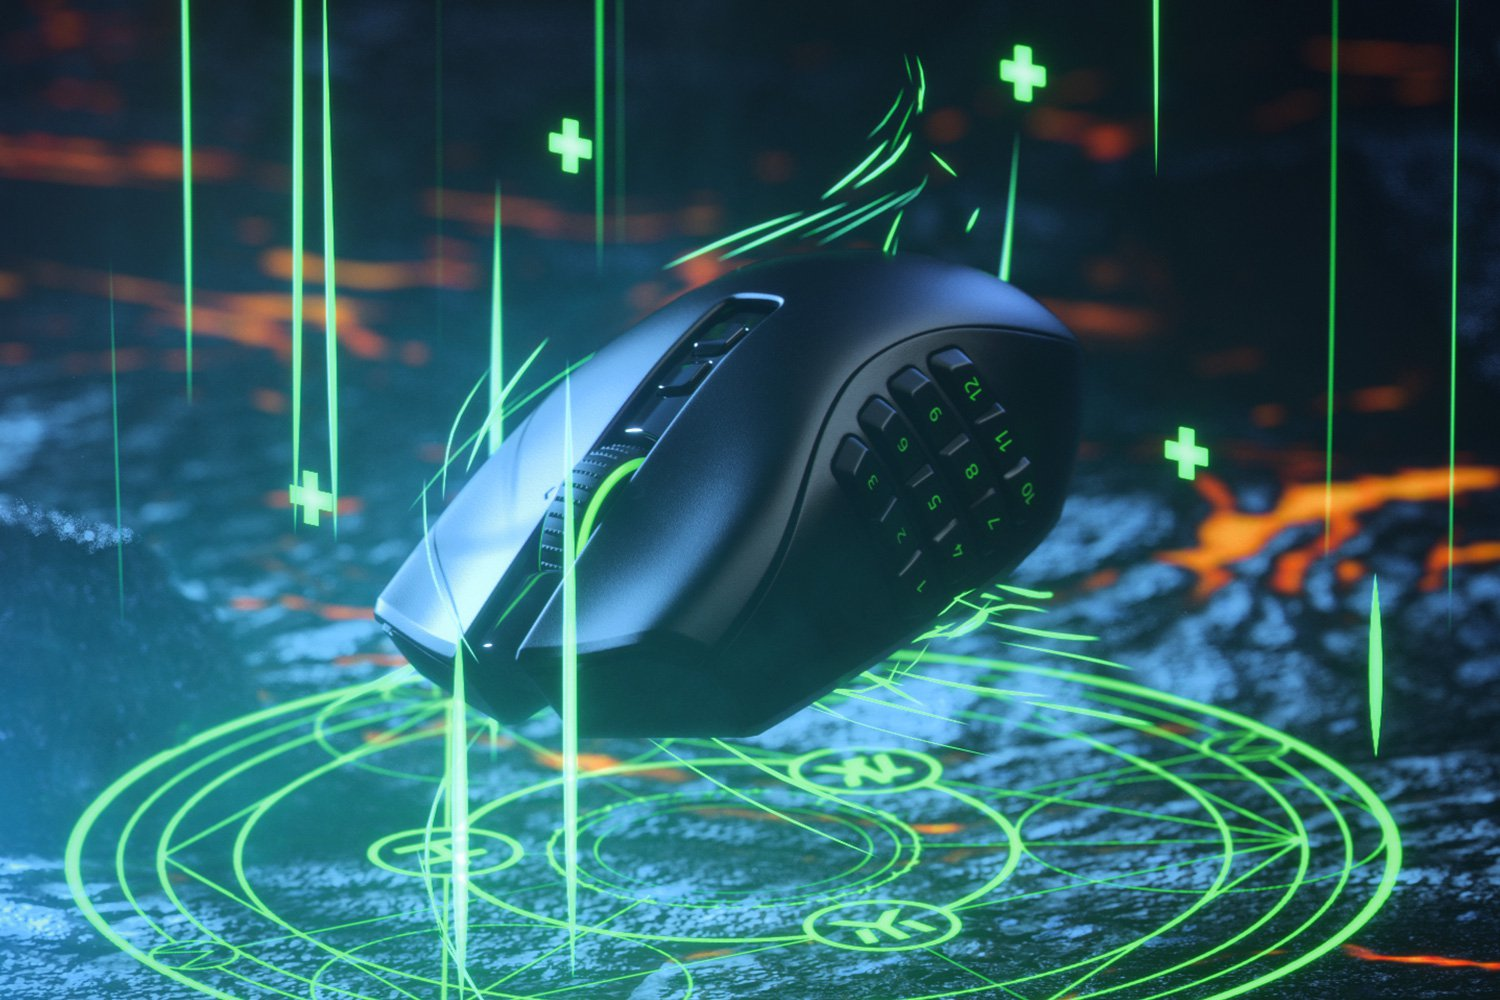 RAZER NAGA PRO - RZ01-03420100-R3G1 | Modular Wireless Gaming Mouse, 3 Swappable Side Plates, 3 Modes Of Connection,  (19+1) Programmable Buttons, Razer Focus+ 20K DPI Optical Sensor